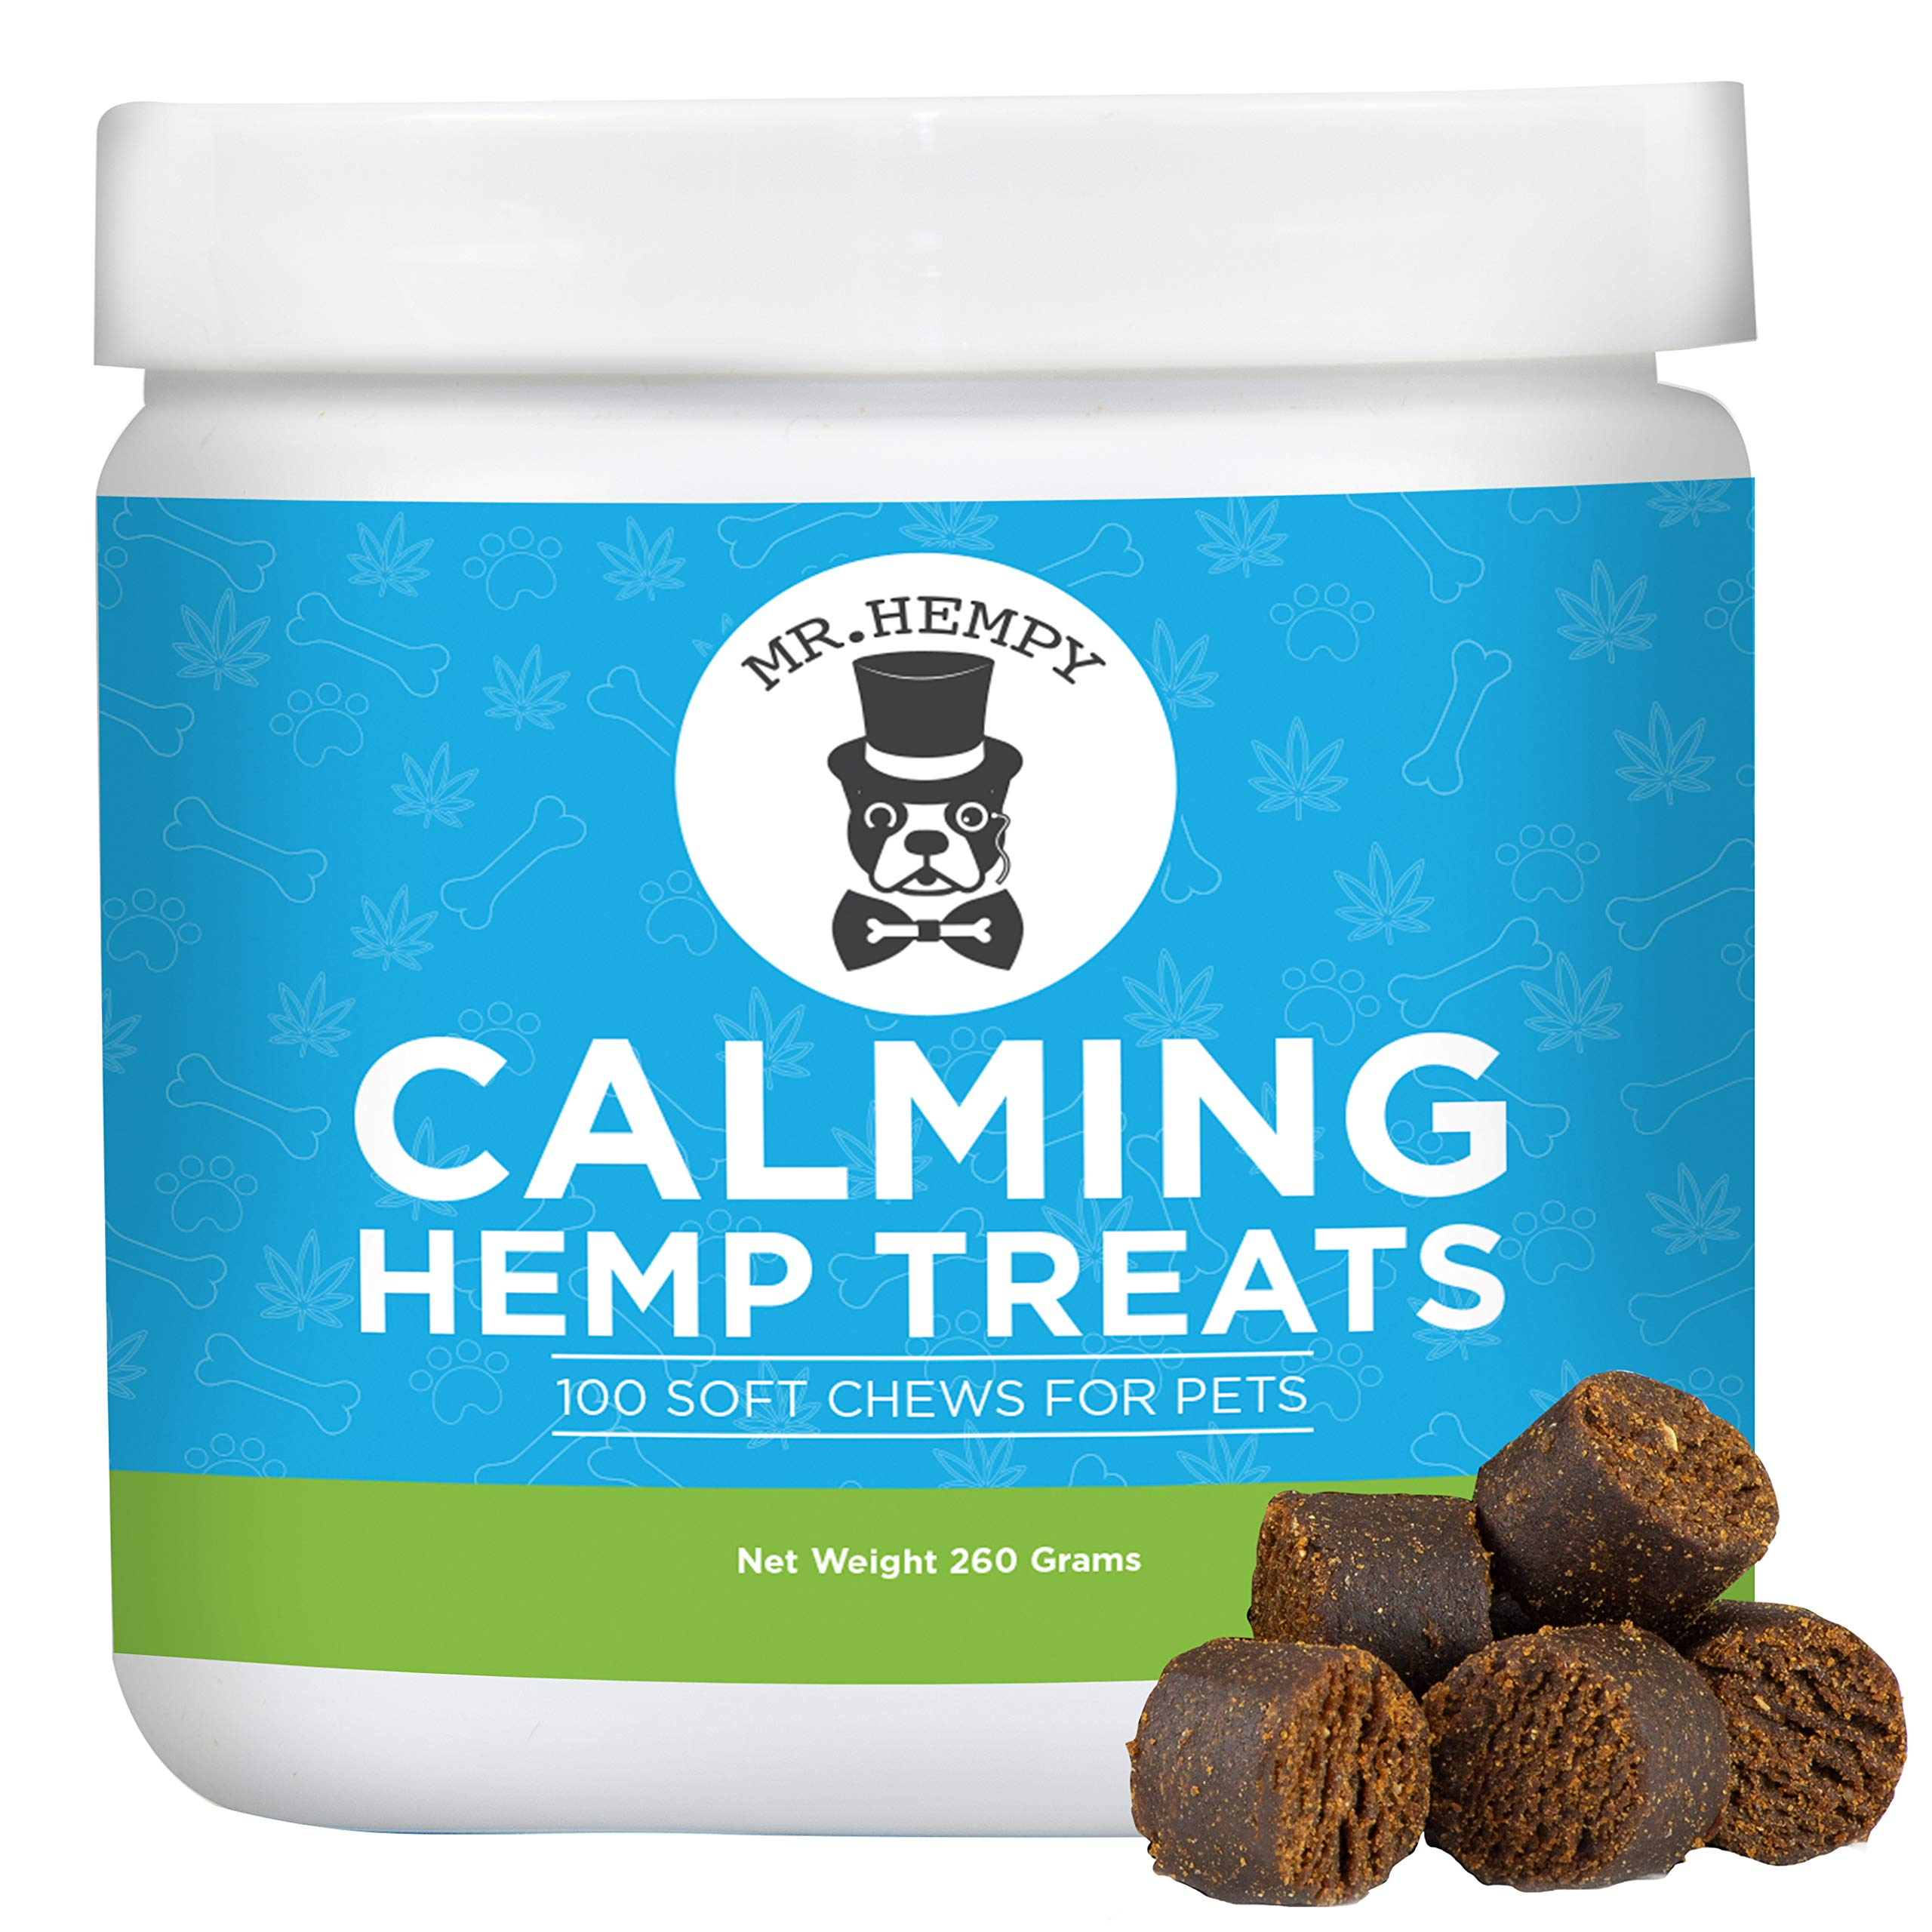 Calming Treats for Dogs - Great Anxiety and Stress Relief for Separation, Storms, Barking - Omega rich Calming Aid and Composure Support - with Hemp Oil, Melatonin, Thiamine and Chamomile, Made in USA by Mr. Hempy